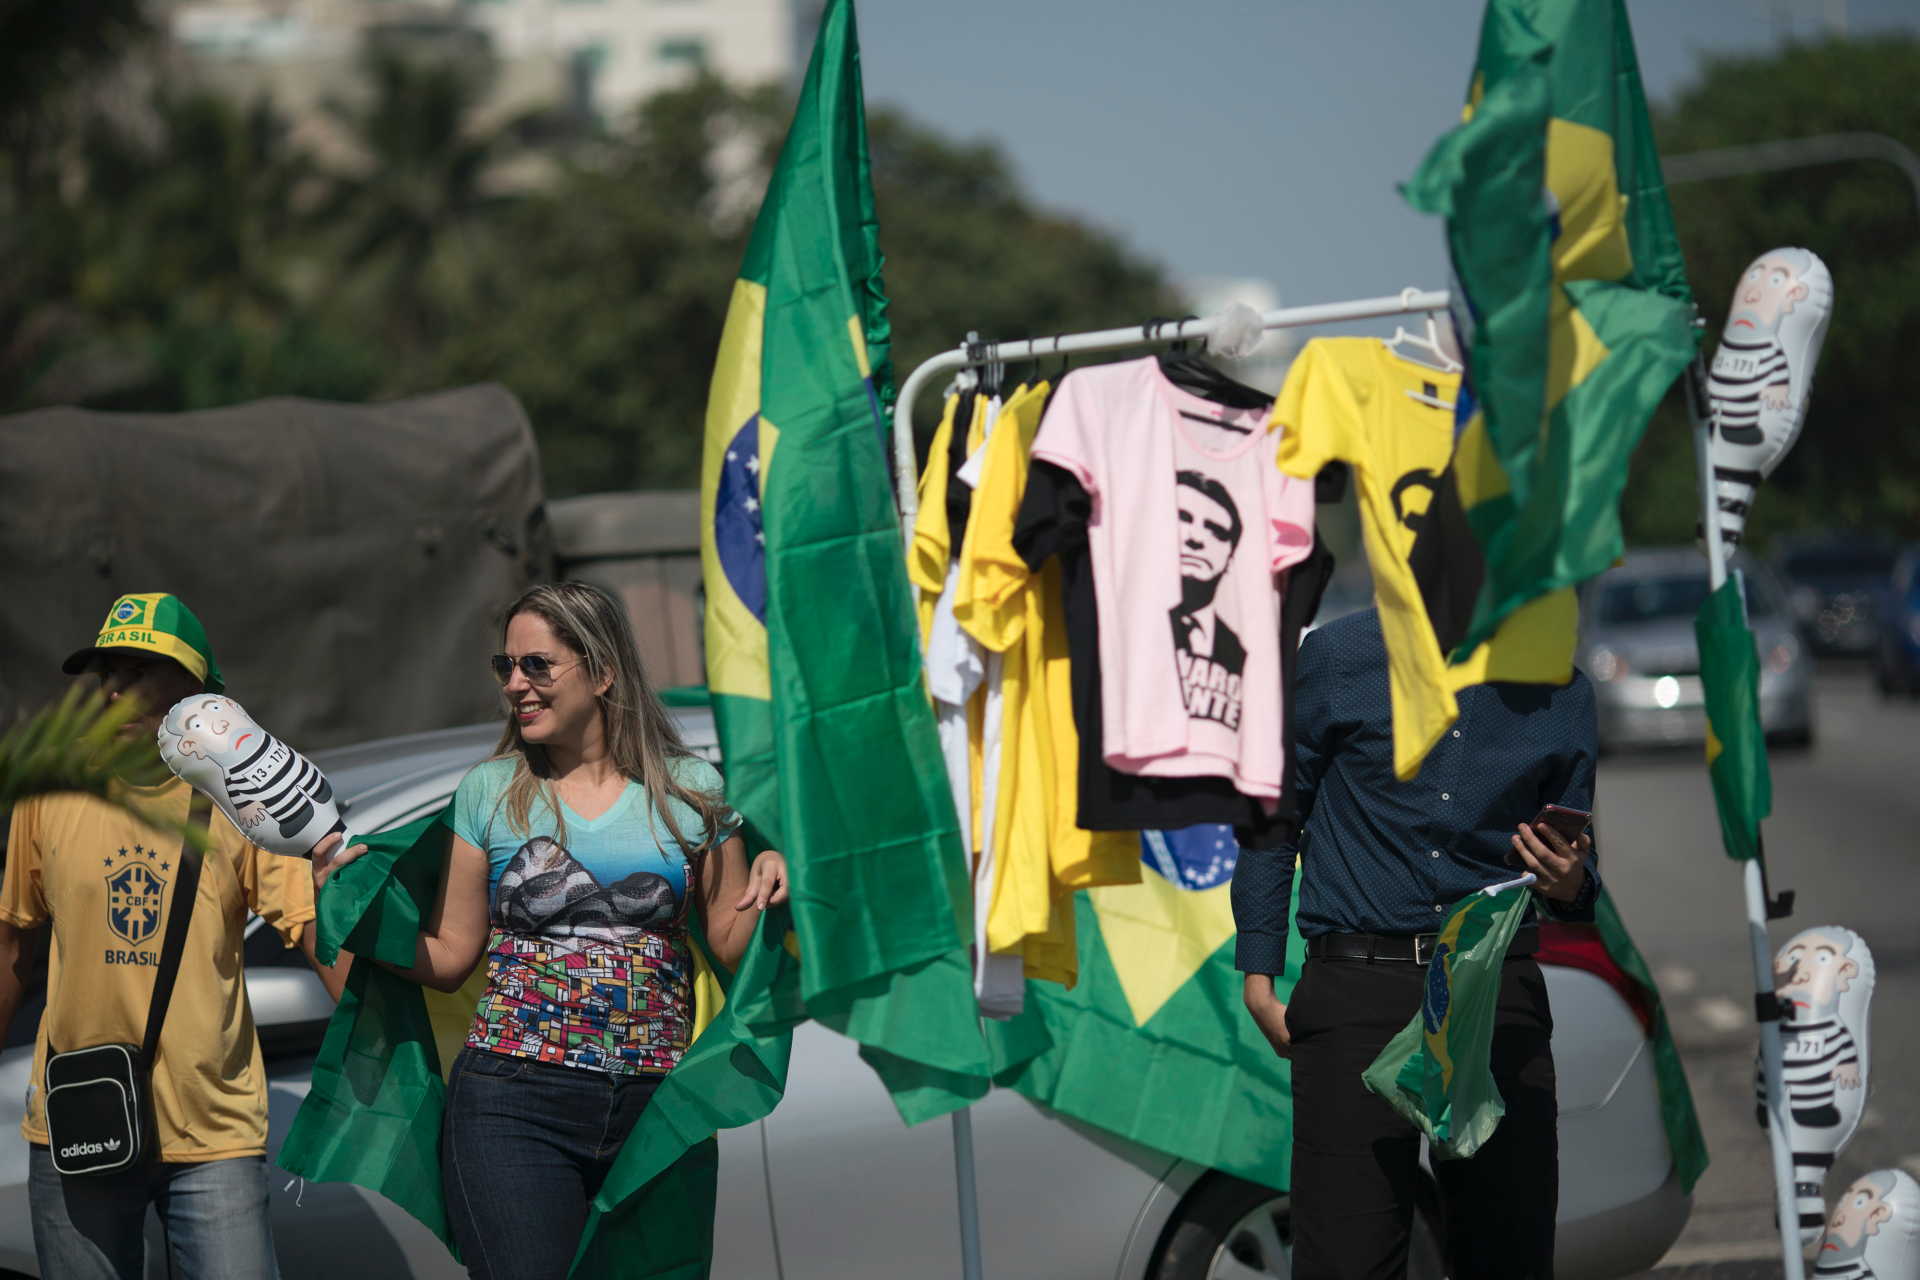 Amid violence, Brazil presidential candidates call for calm